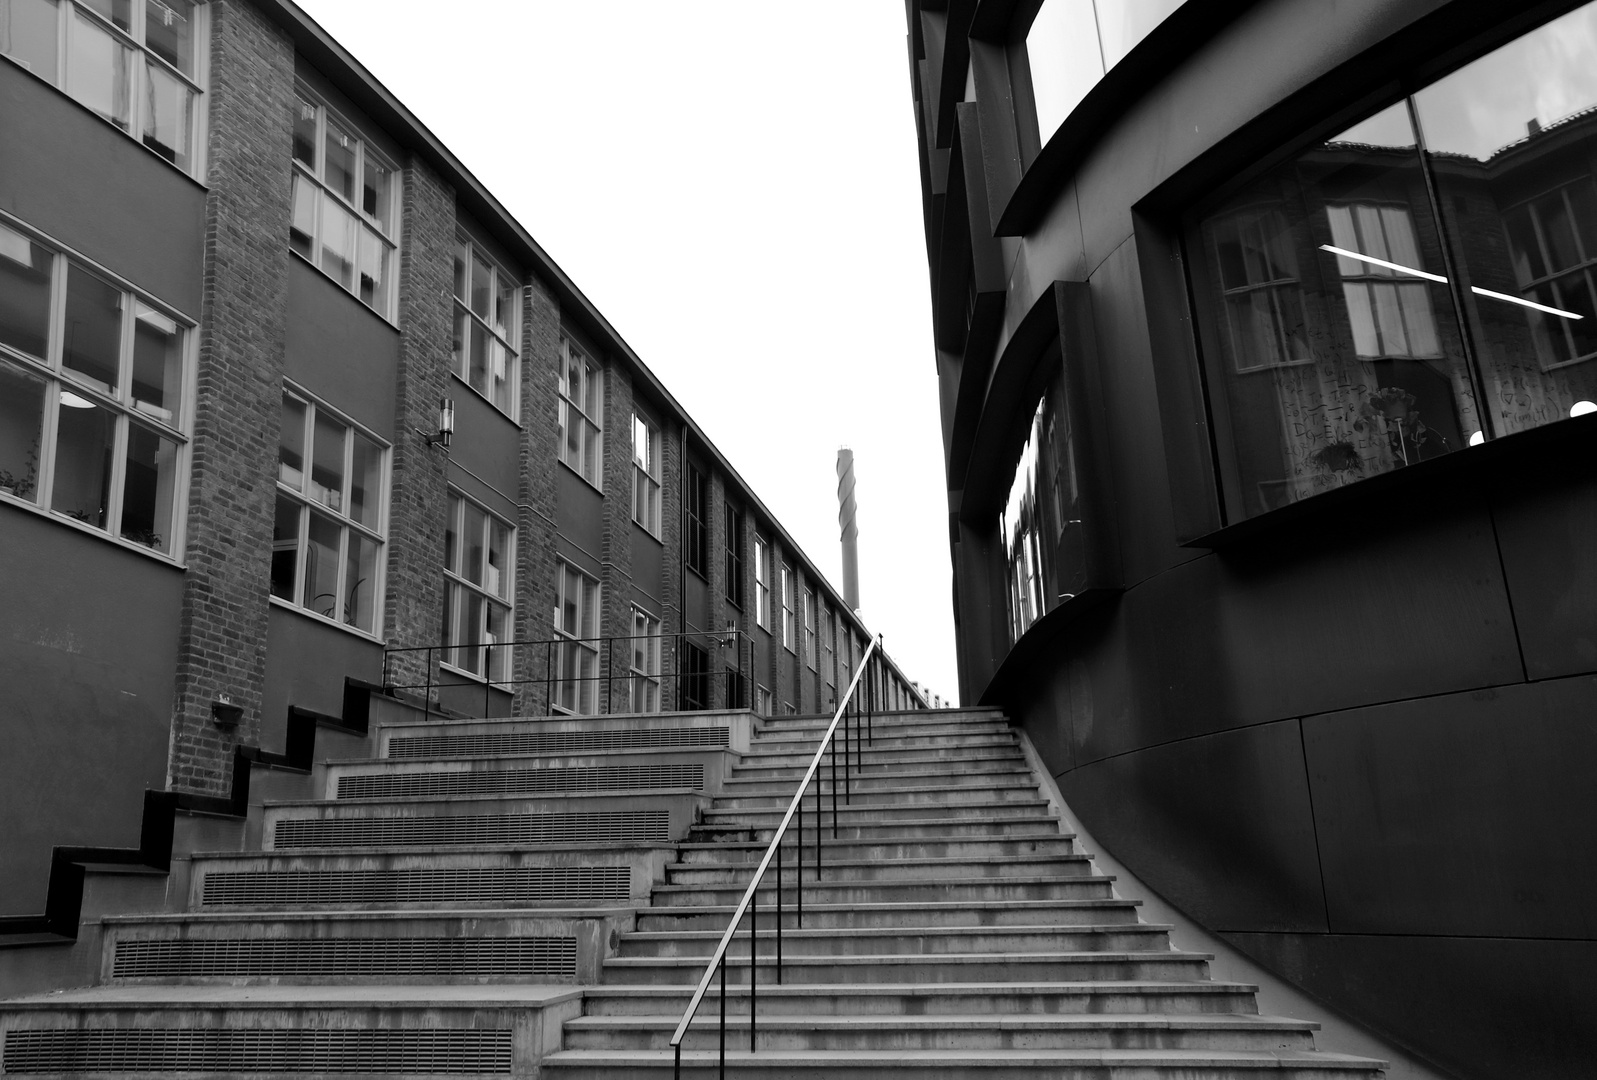 KTH Royal Institute of Technology II